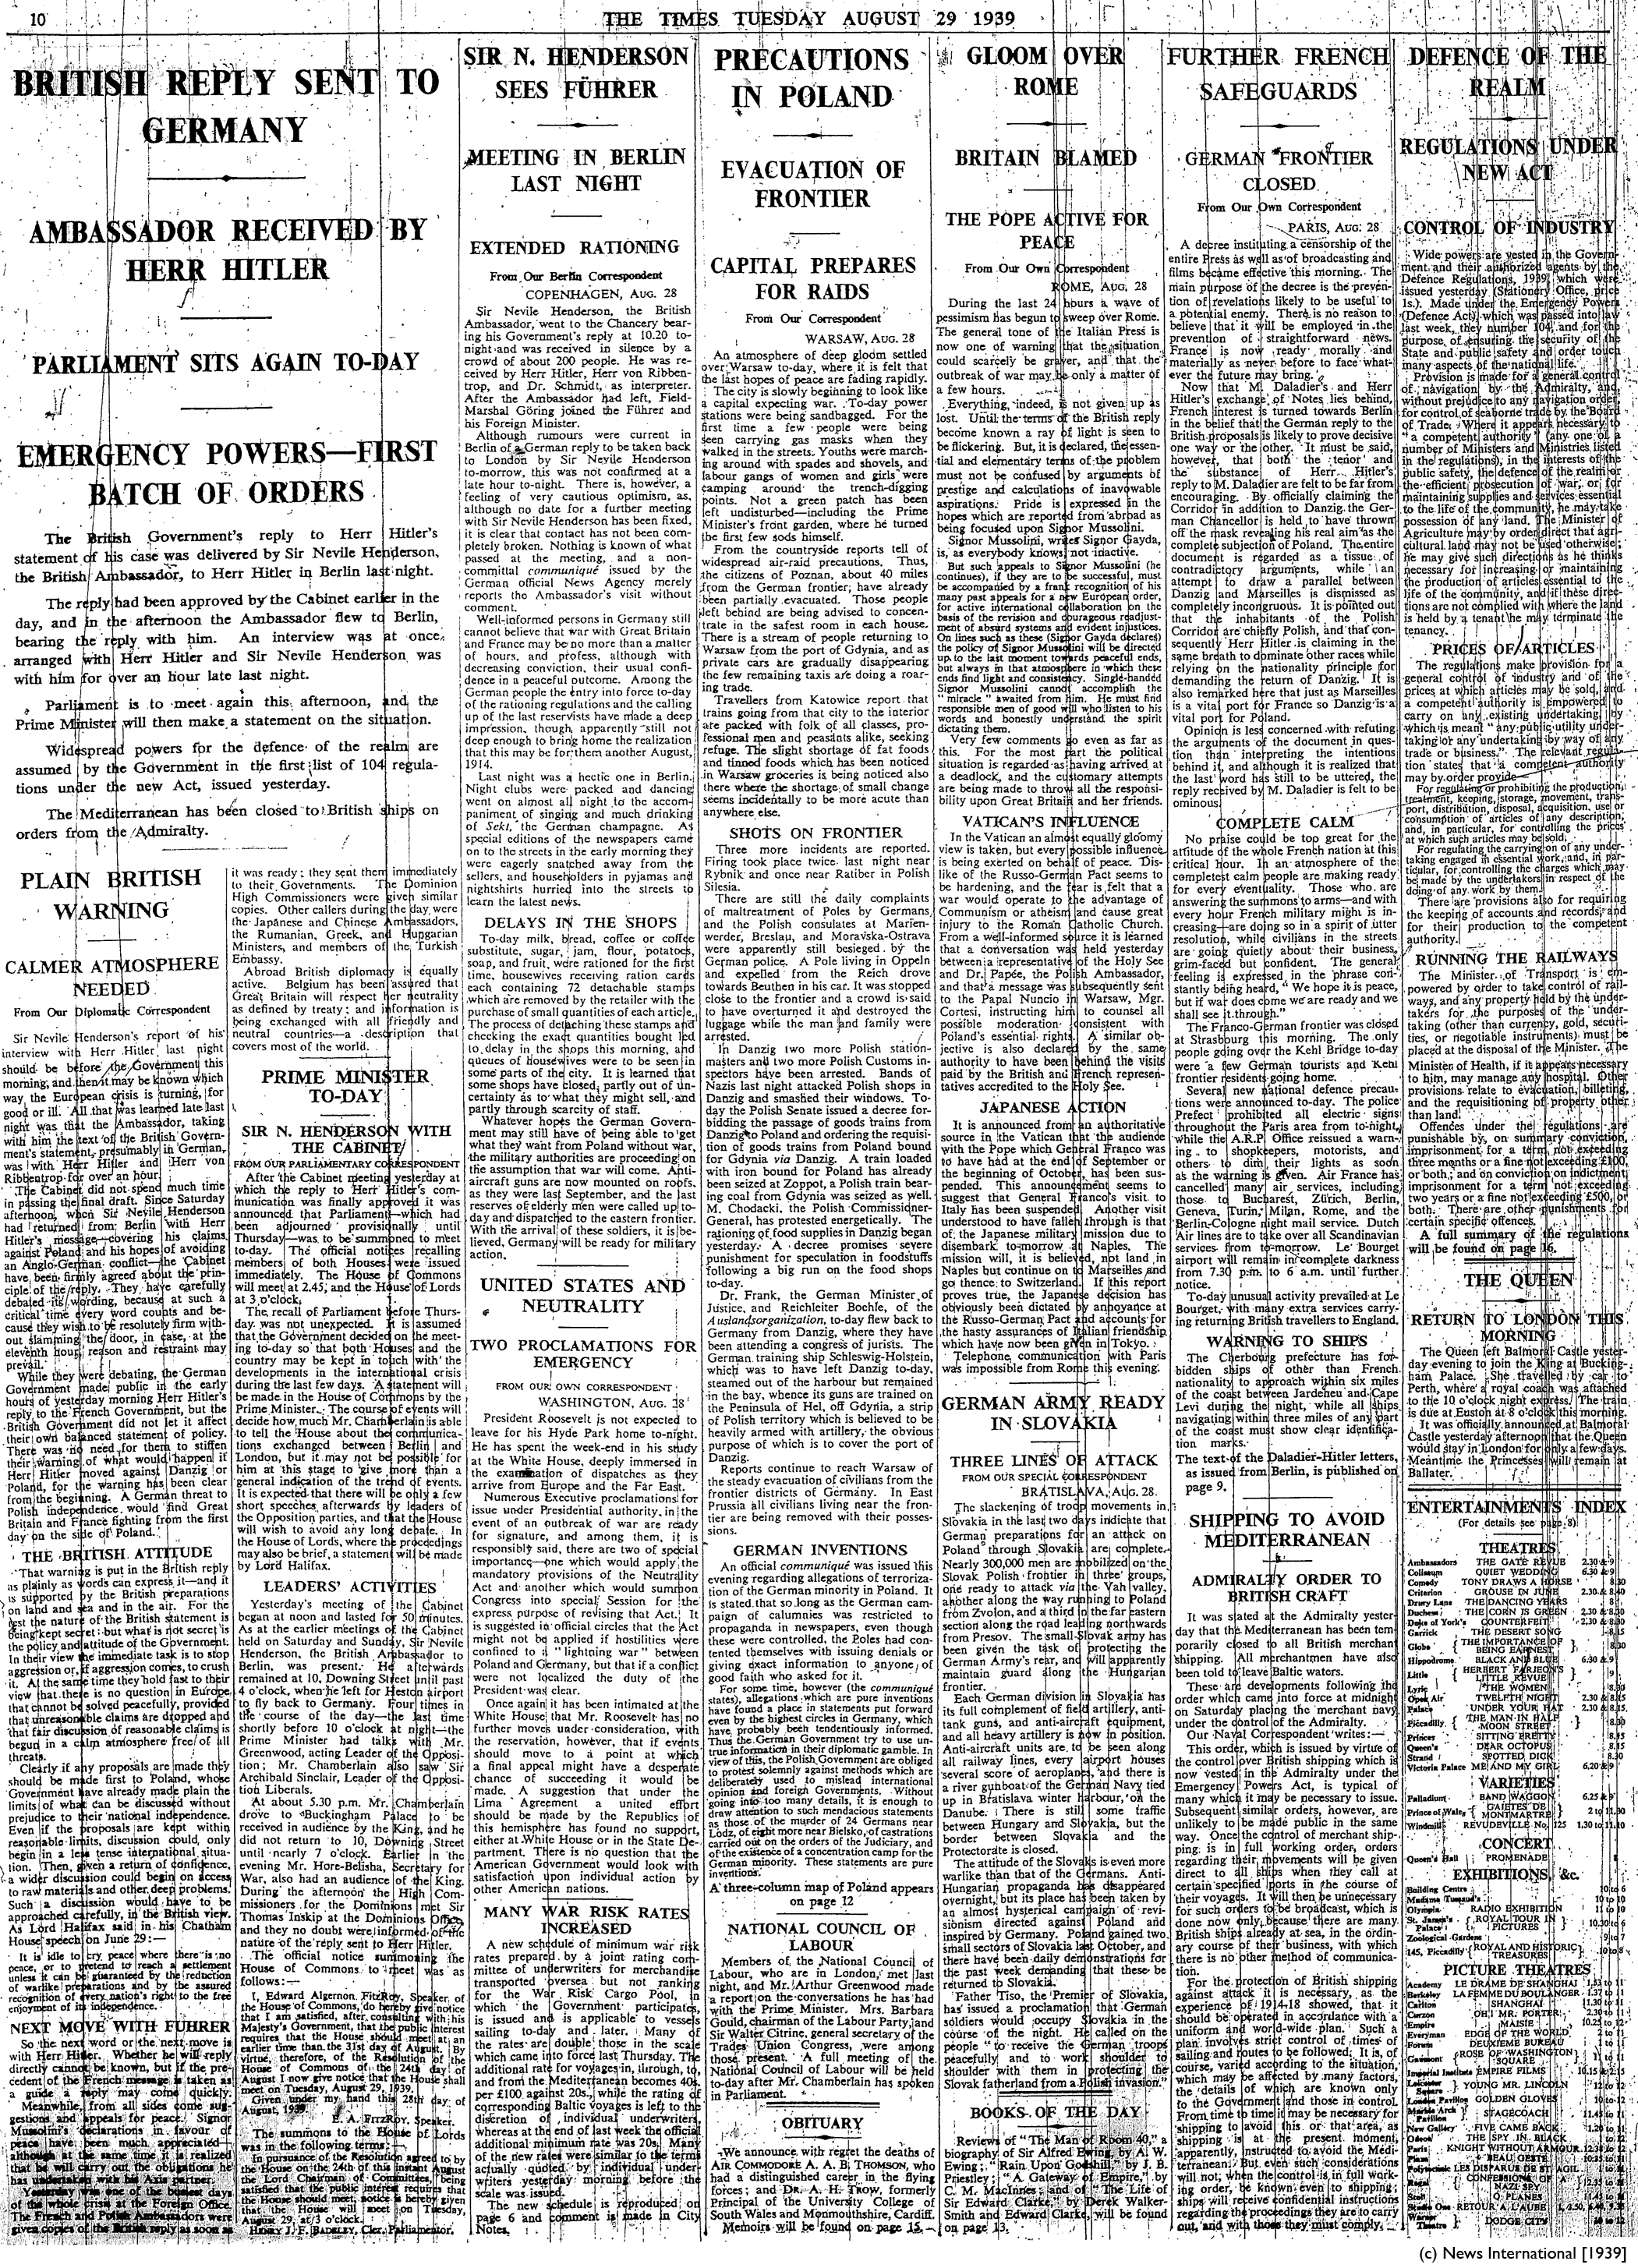 The Times 29-8-39 Page 10